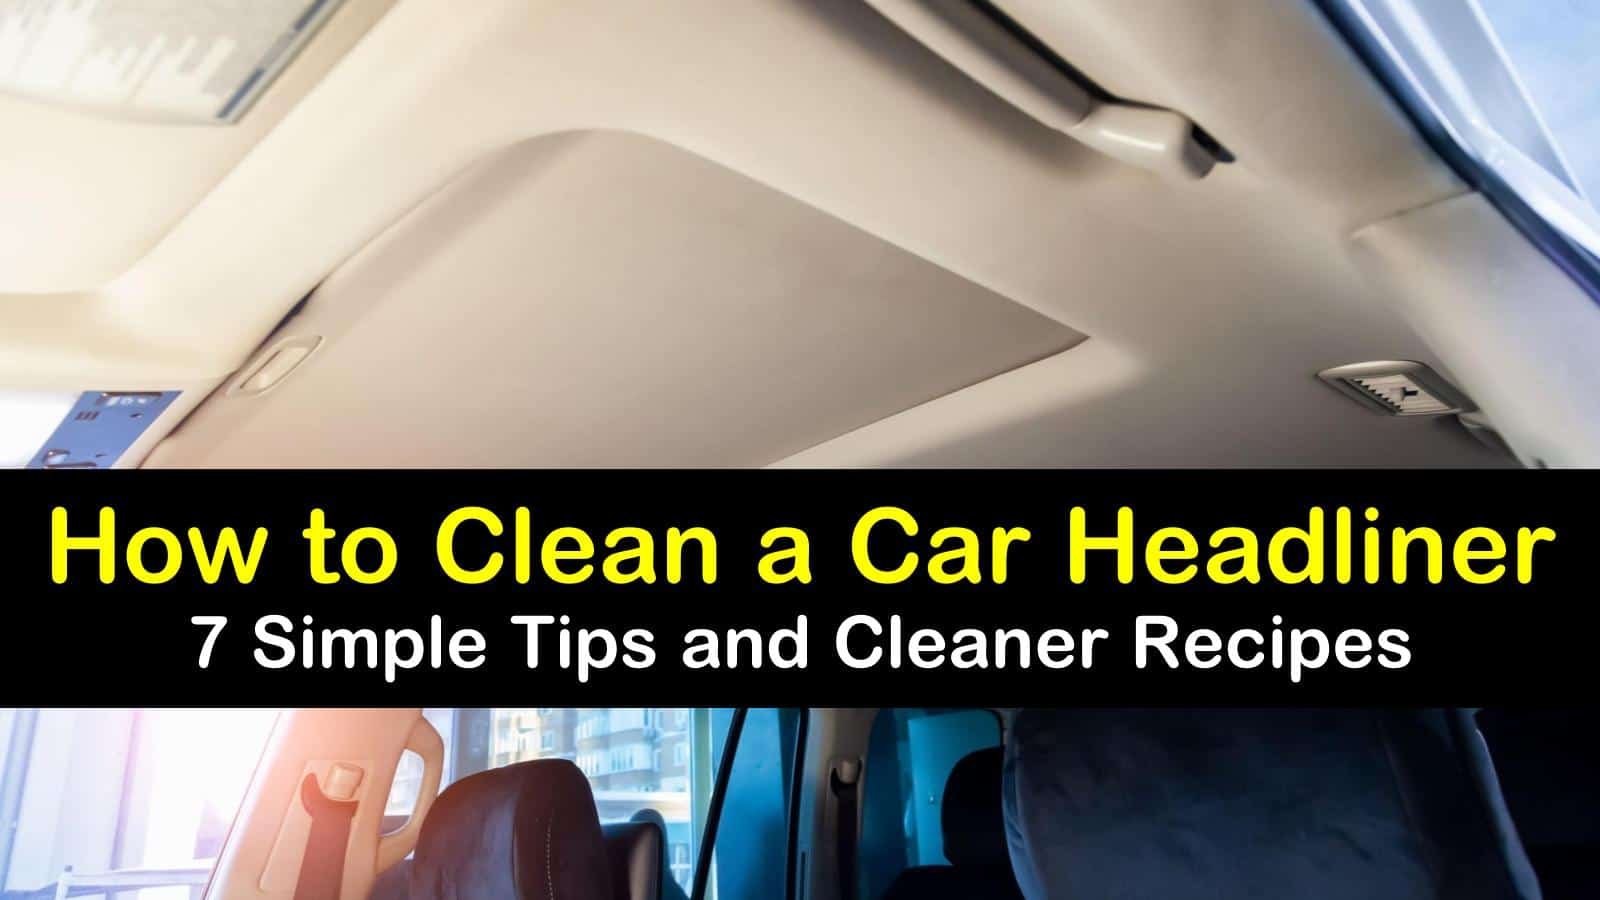 how to clean a car headliner titleimg1